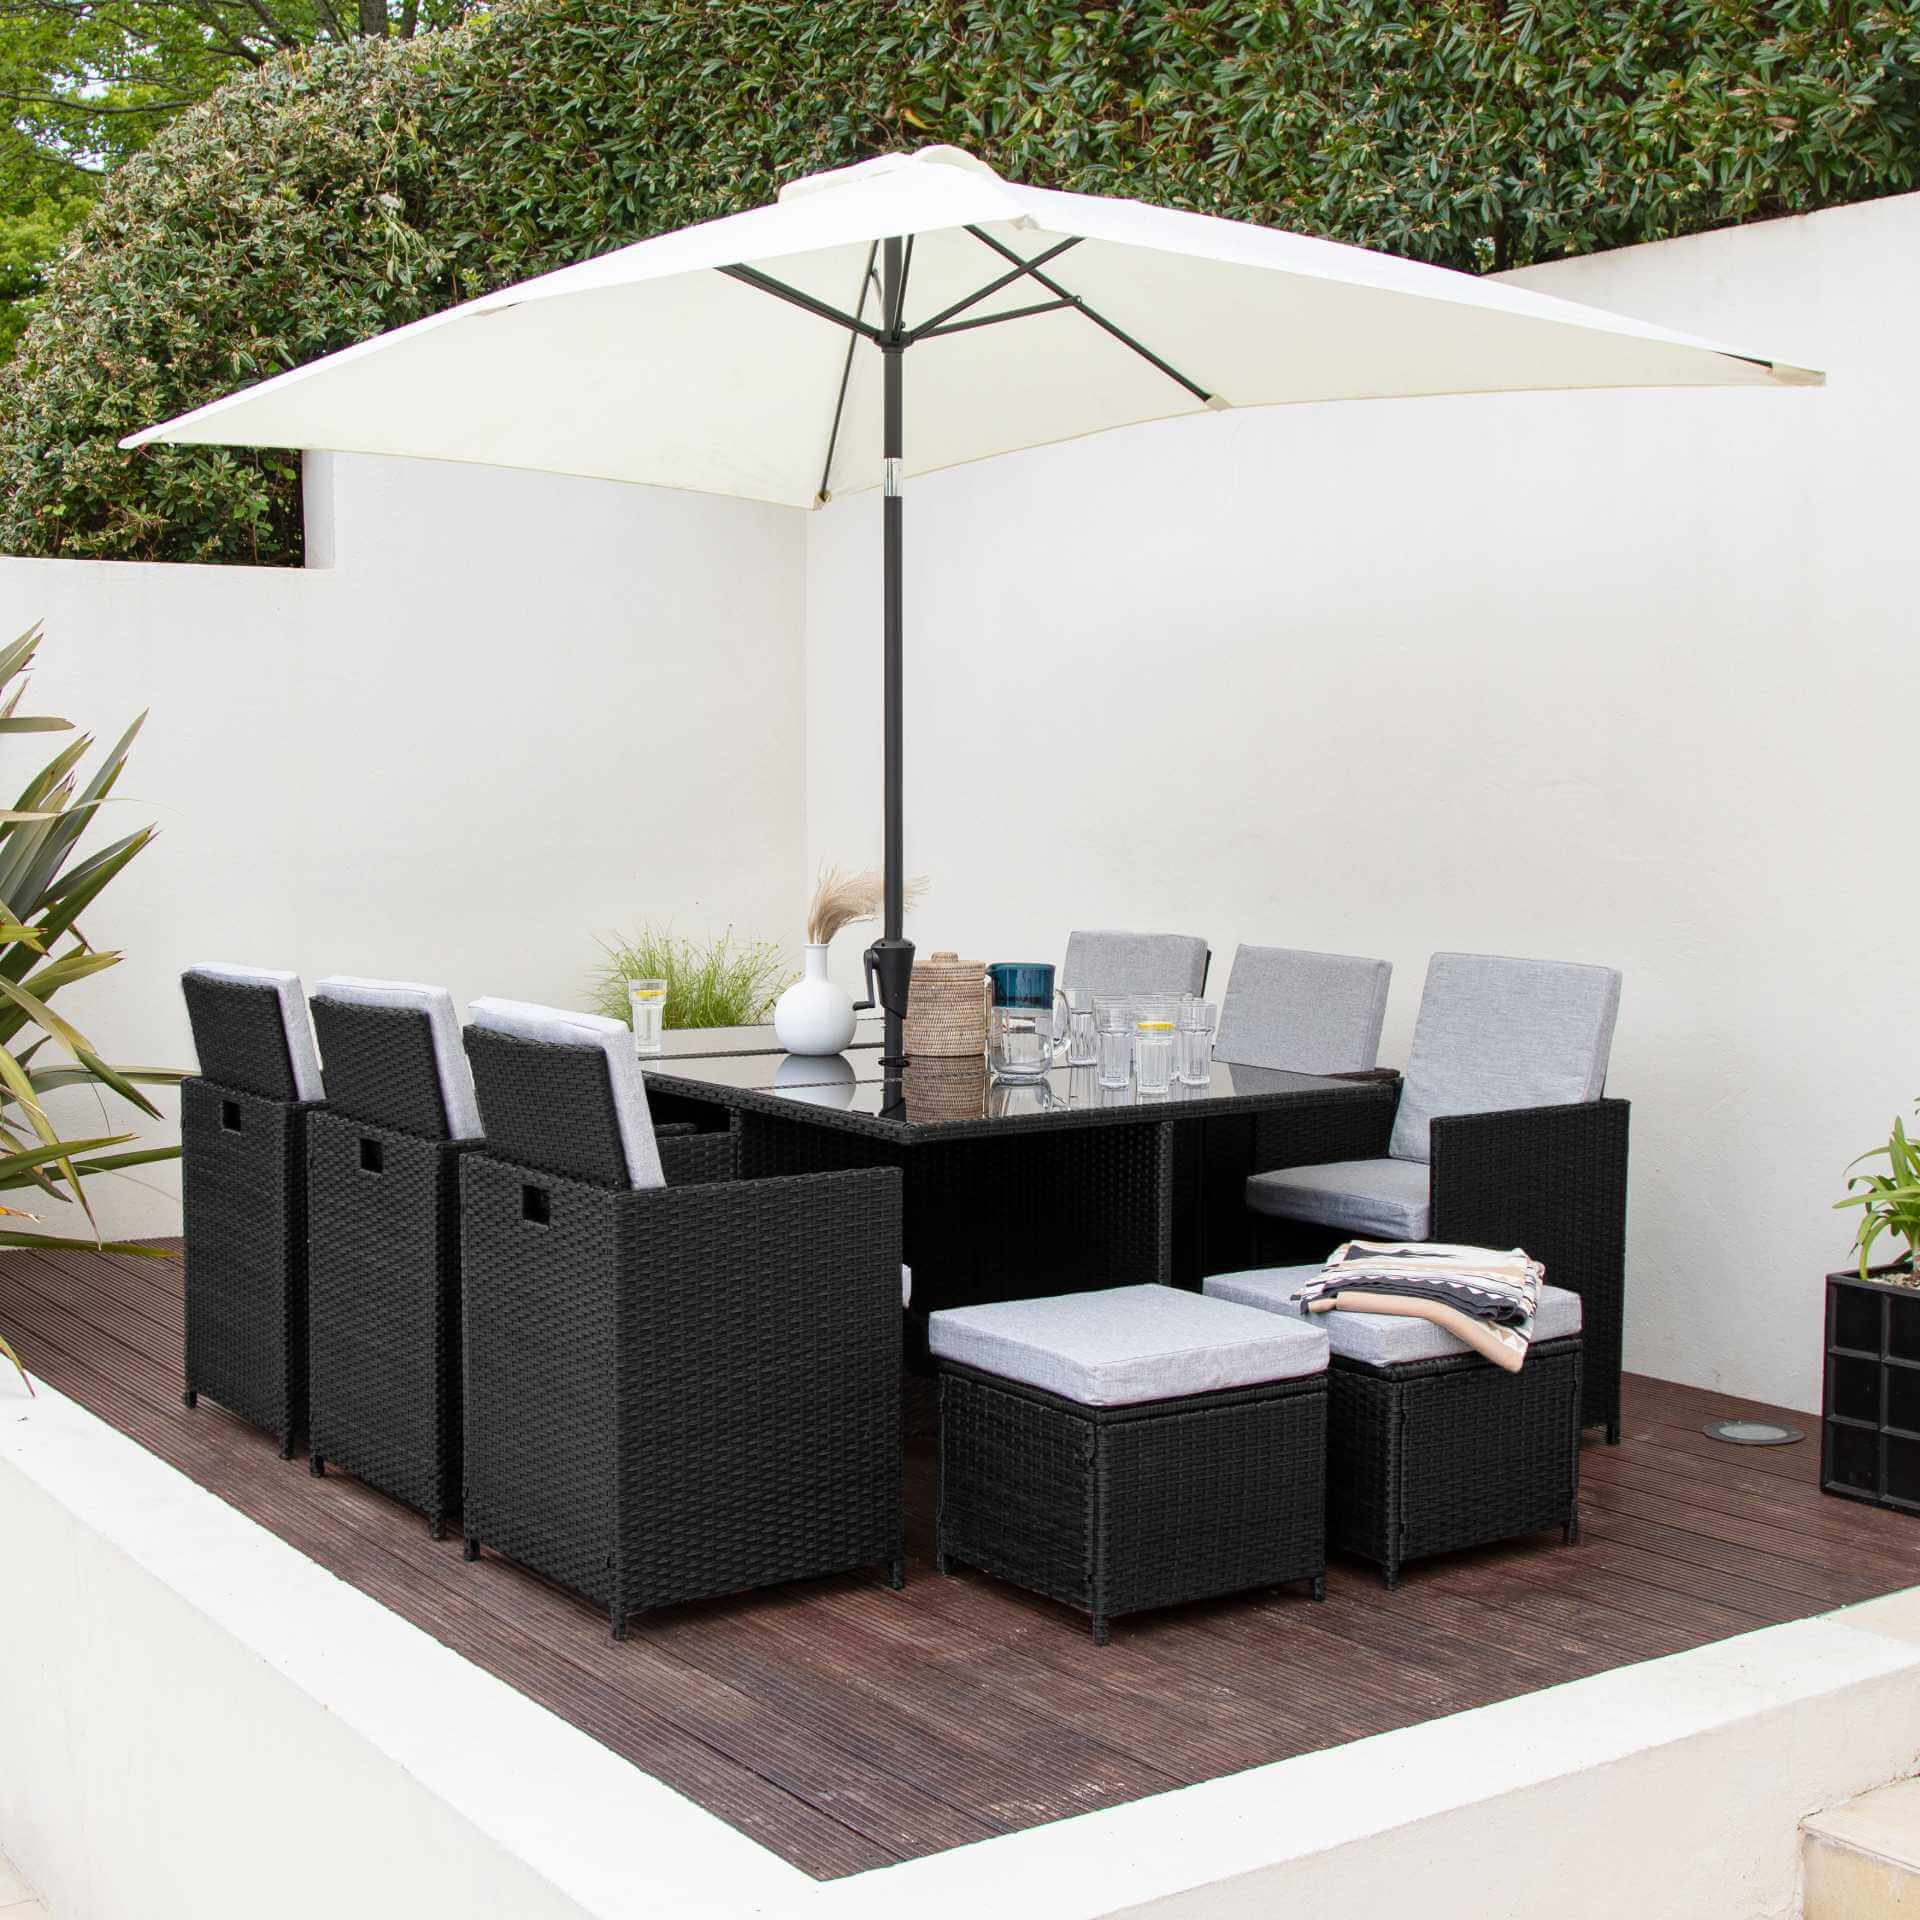 10 Seater Rattan Cube Outdoor Dining Set with Parasol - Black Weave - Laura James